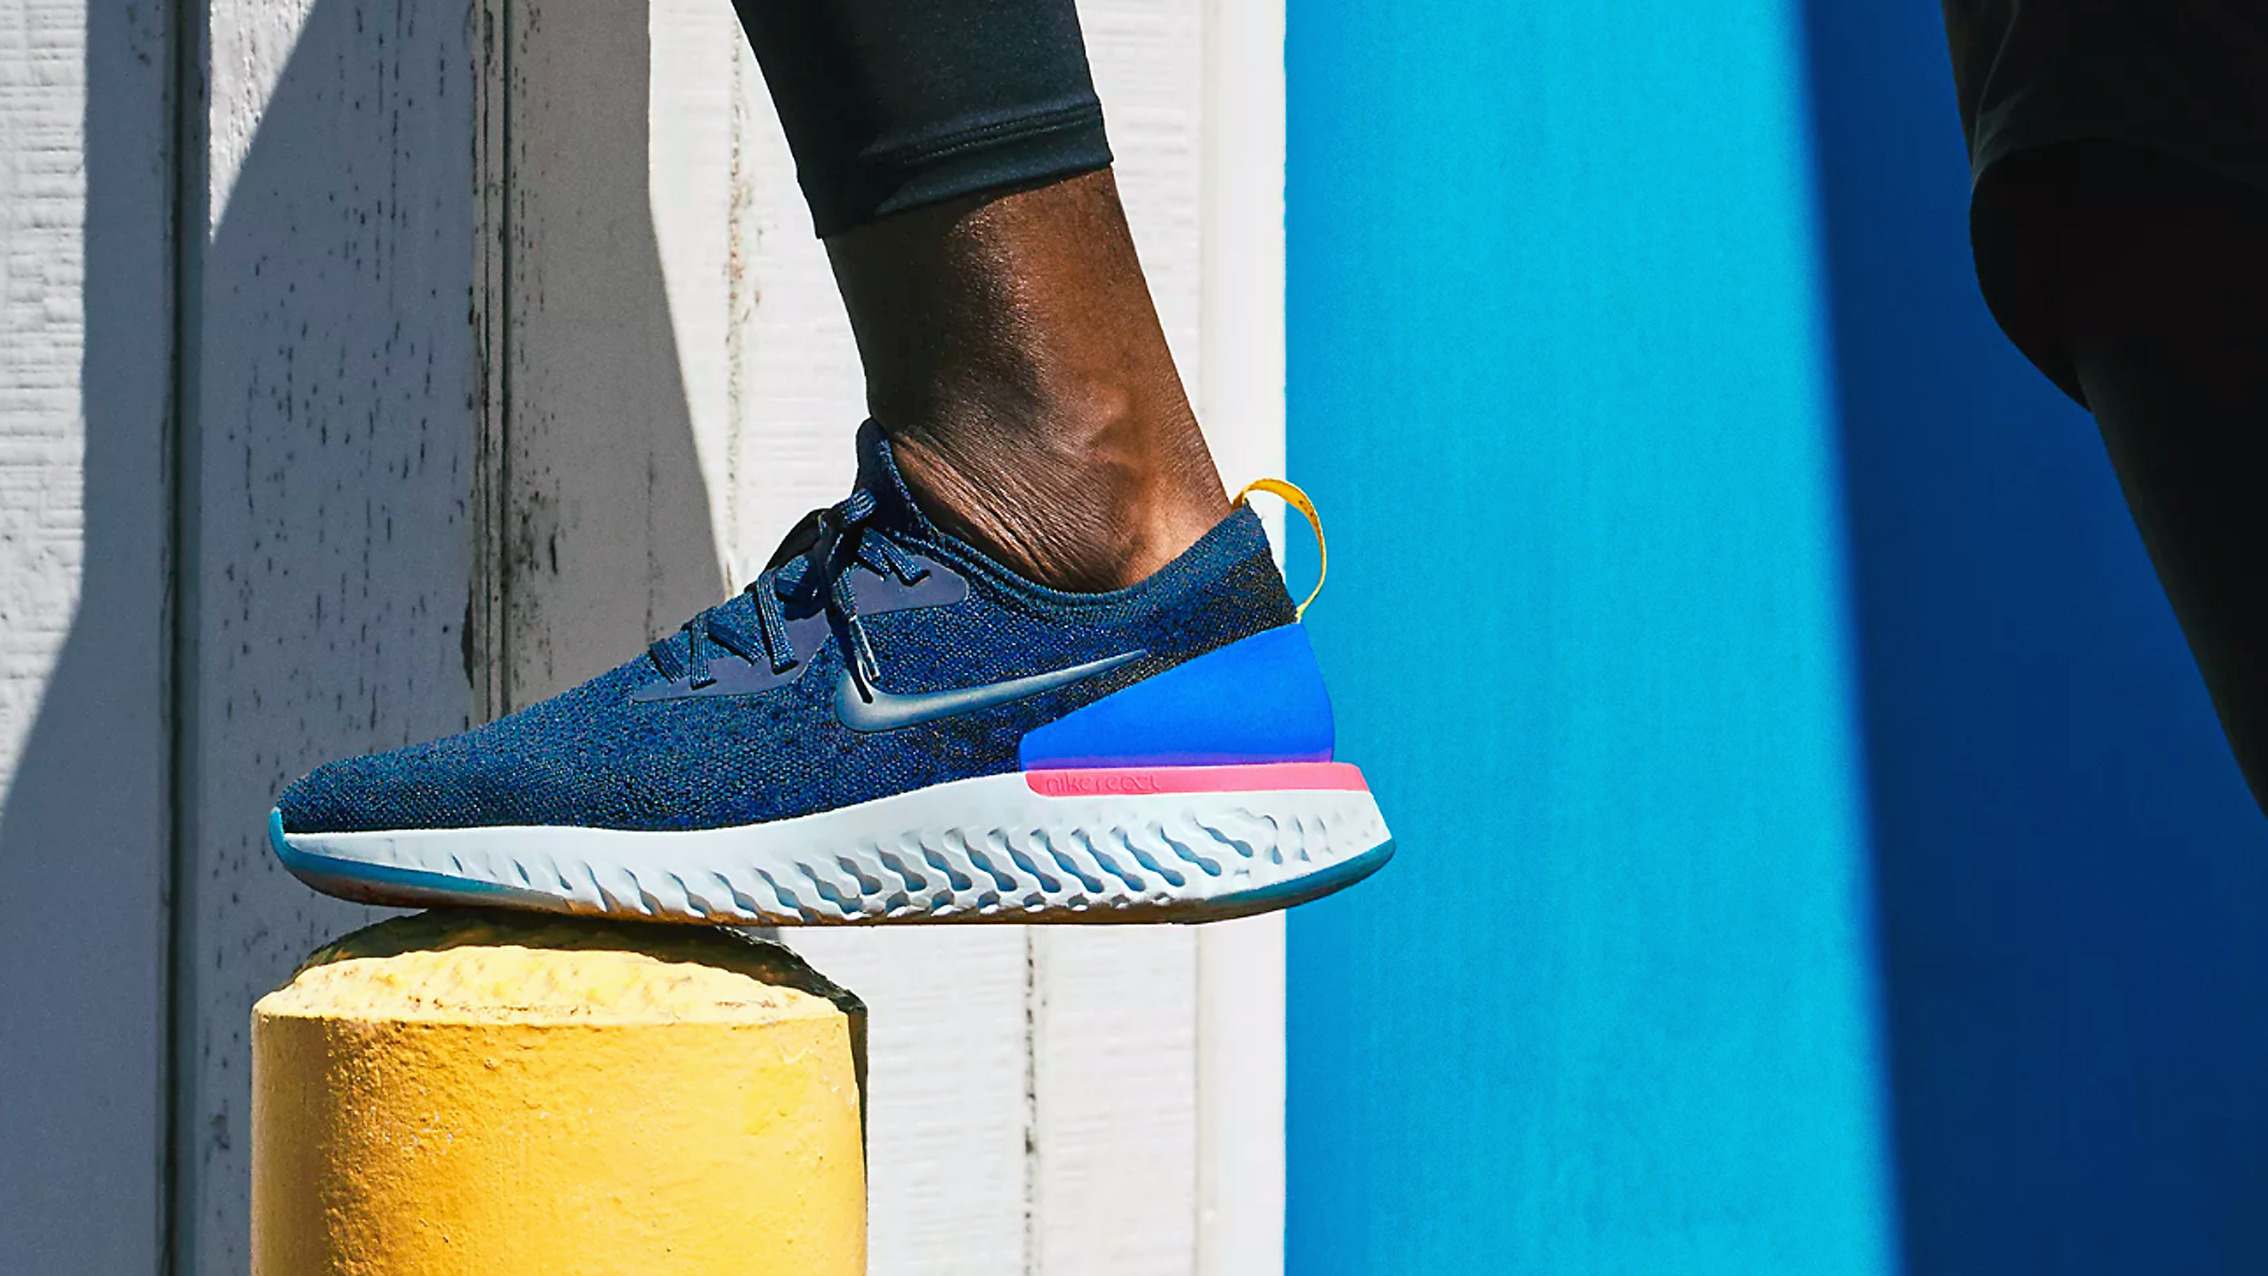 c6948d9d292a Nike Epic React Flyknit review  the best running shoe of 2018 so far ...